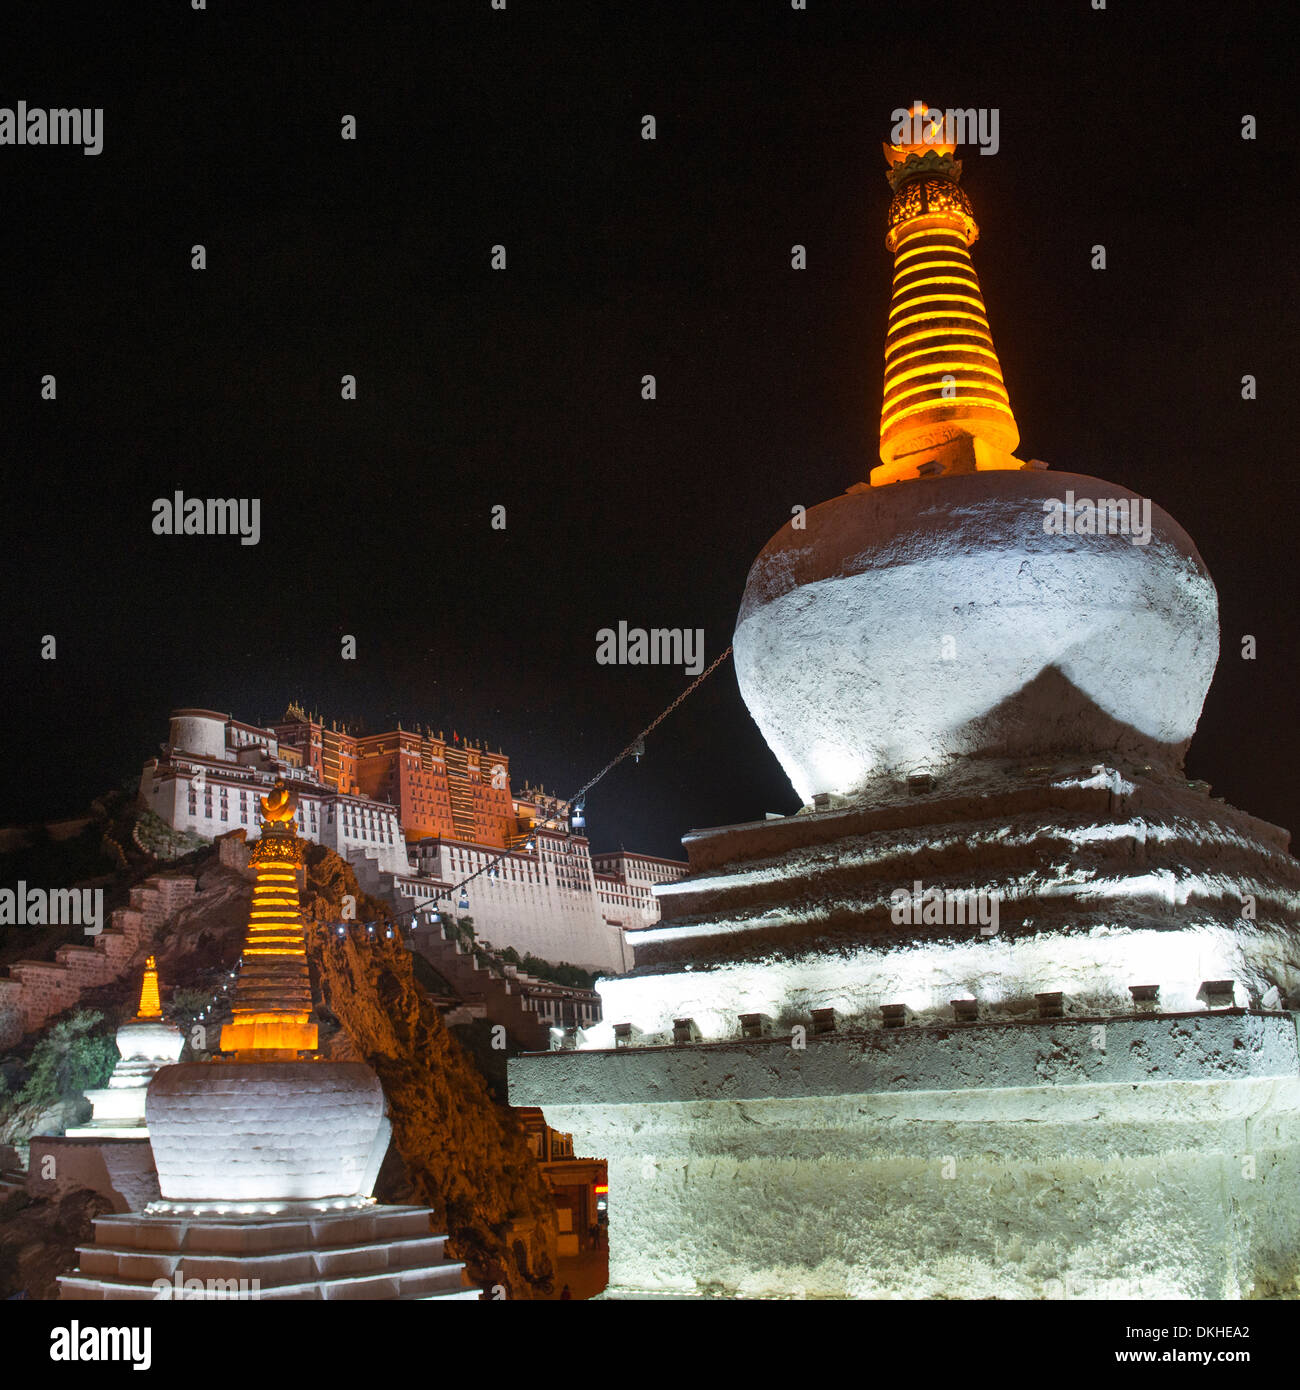 Low angle view of a stupa with Potala Palace in the background, Lhasa, Tibet, China - Stock Image